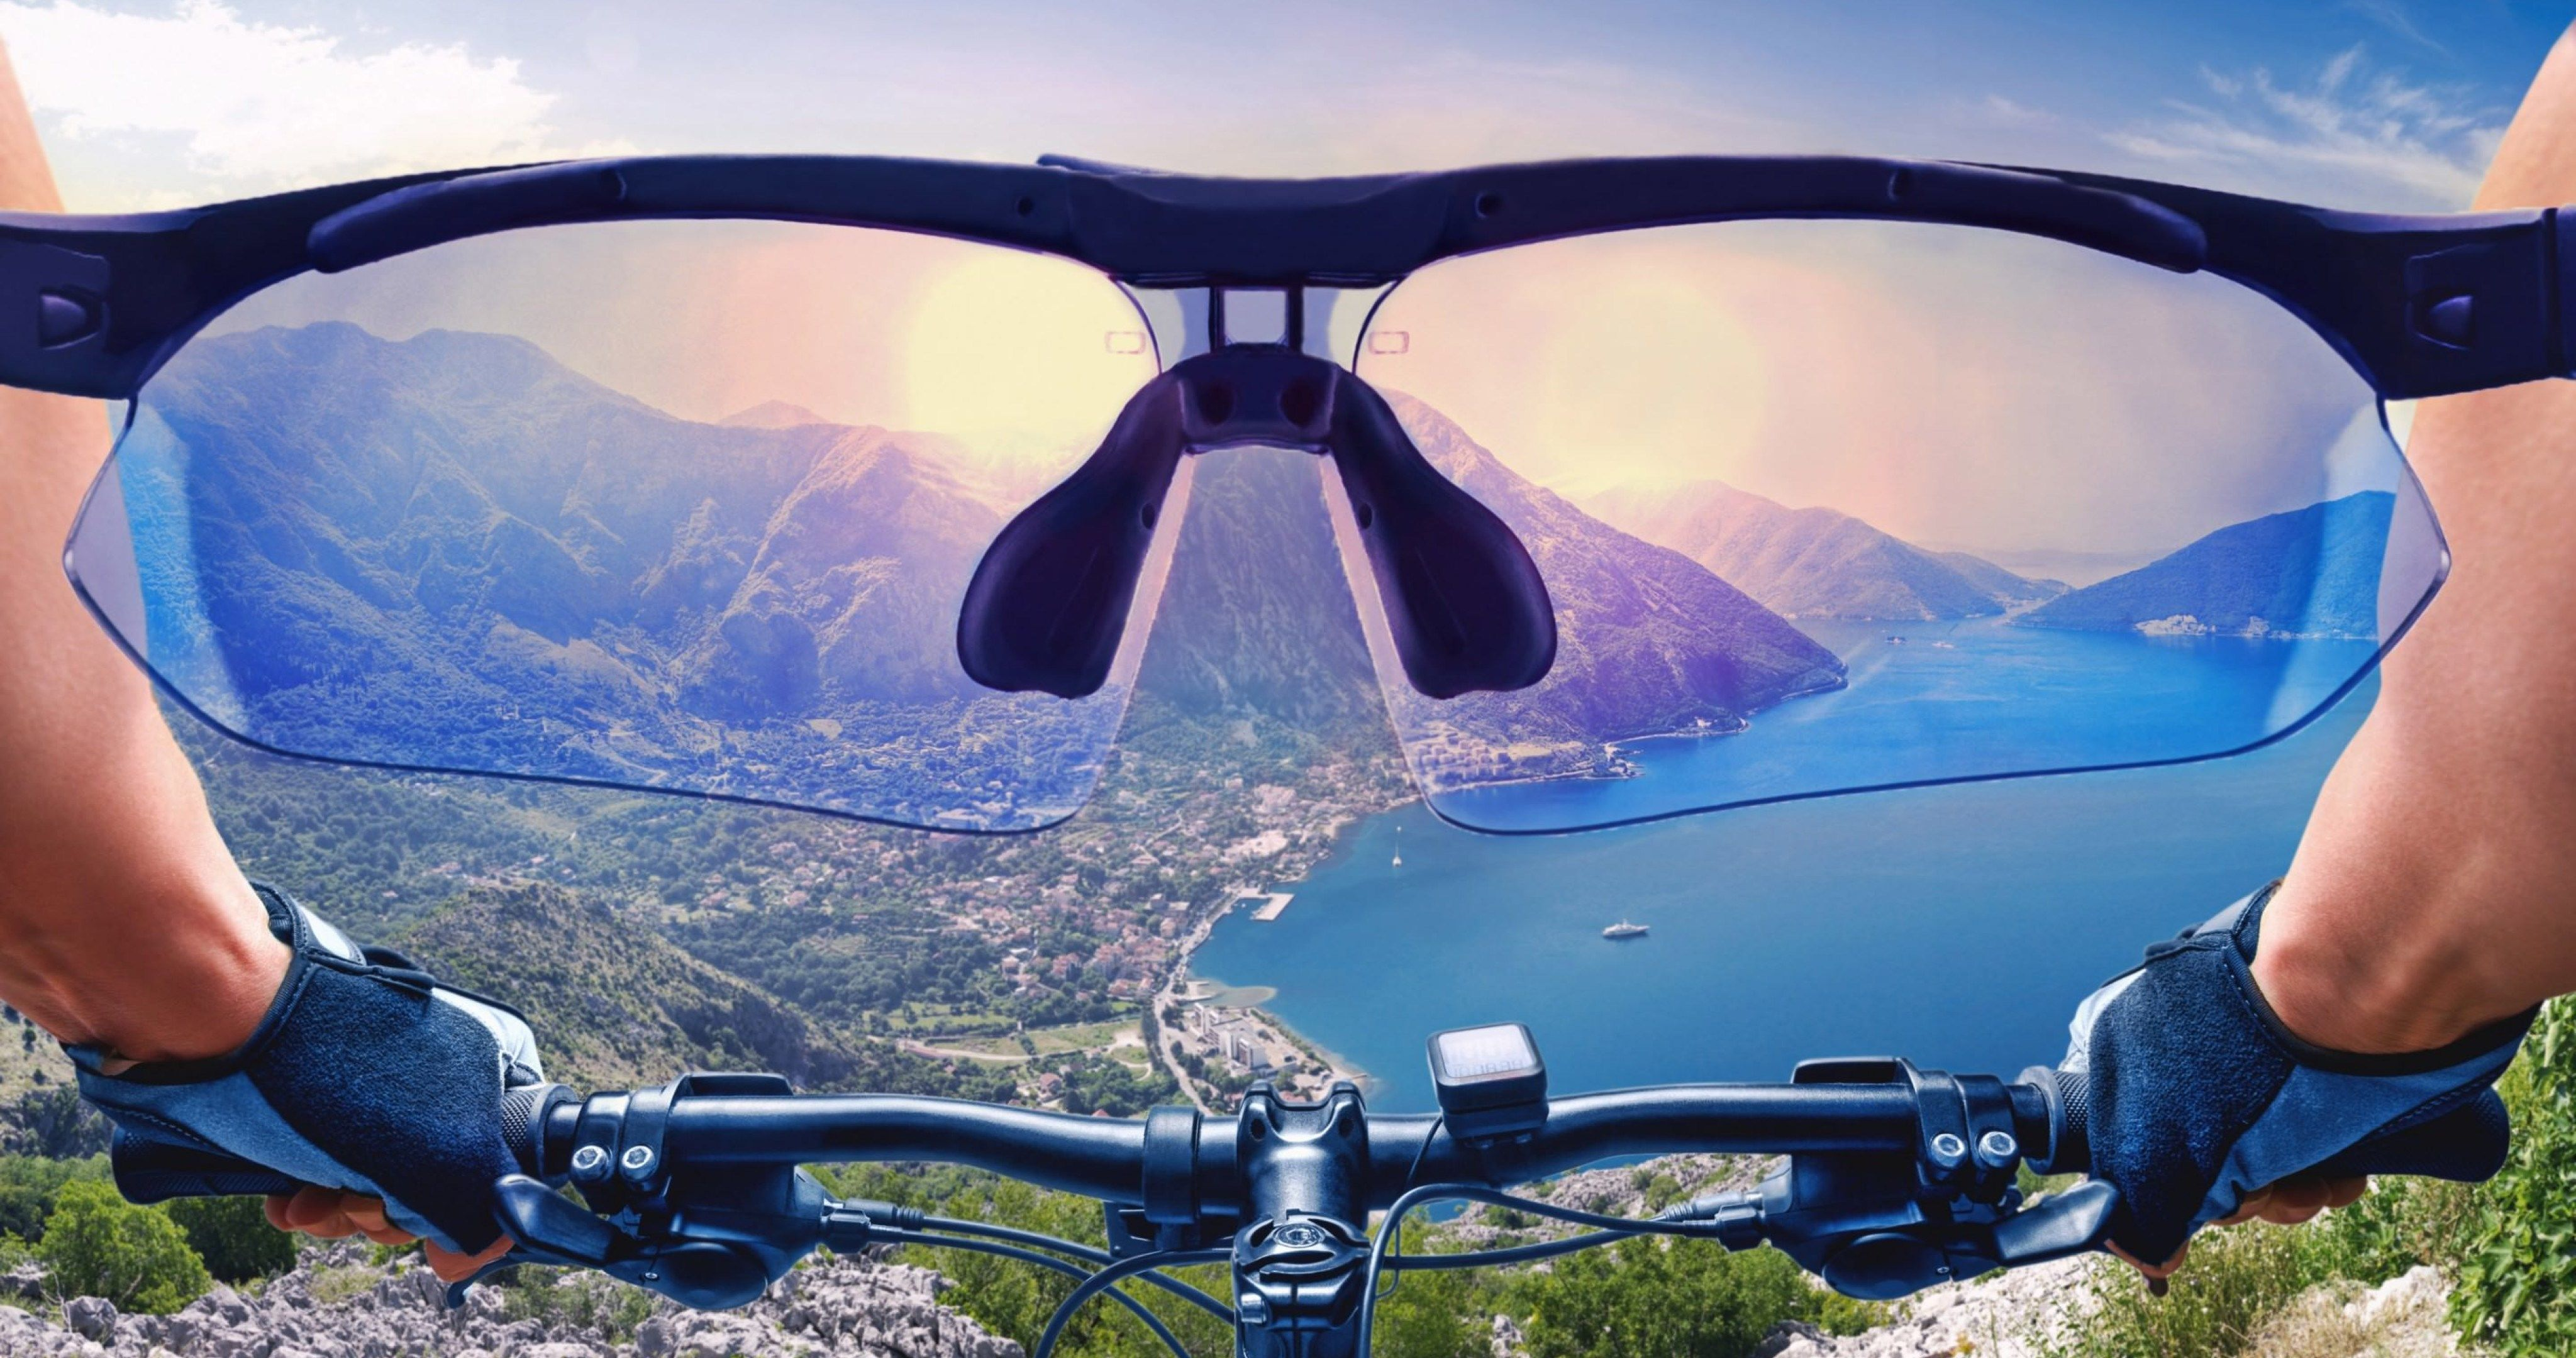 Cycling Bike View From First Person 4k Ultra Hd Wallpaper View